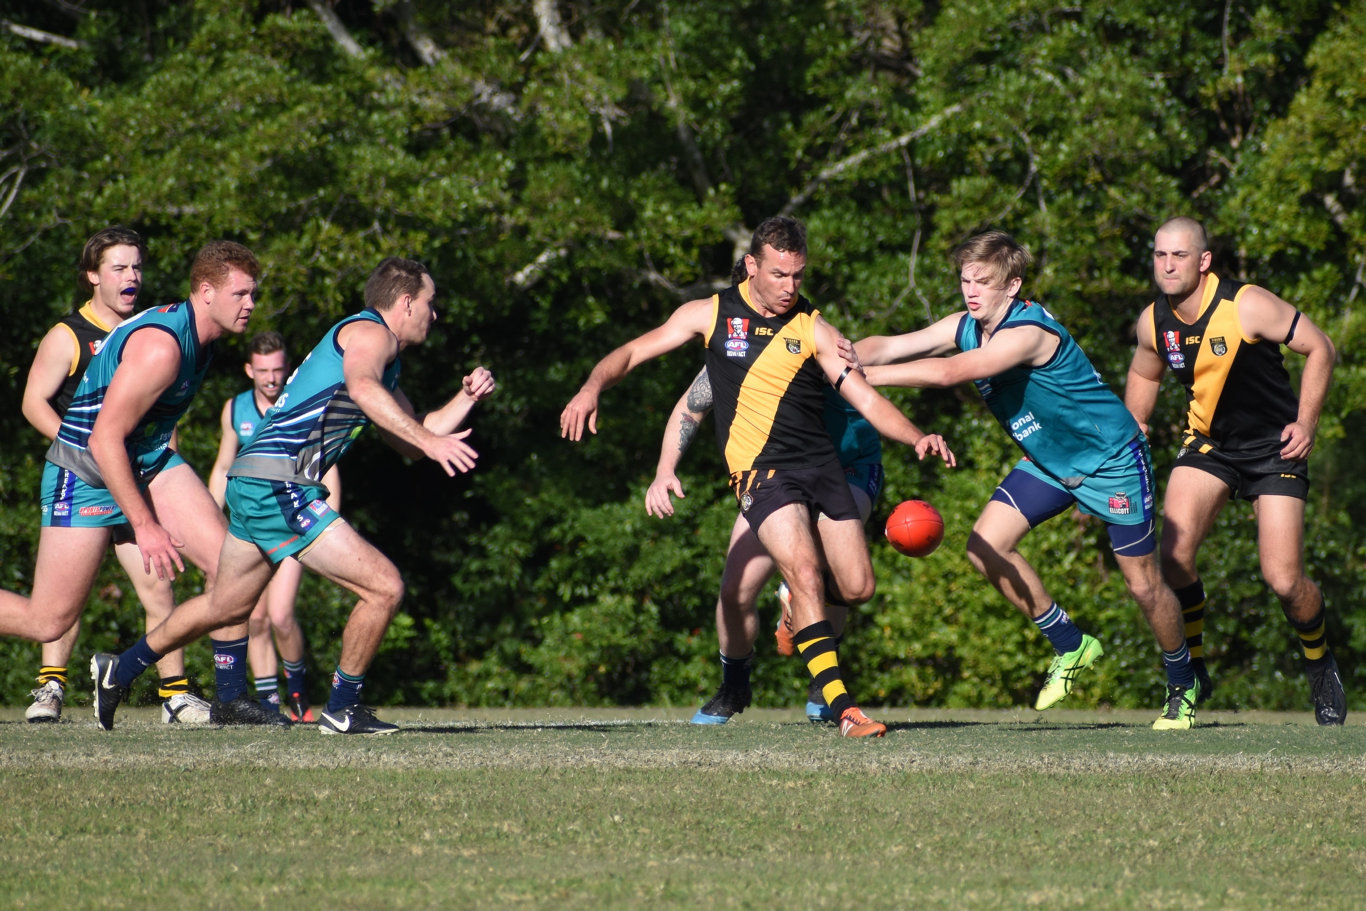 The Grafton Tigers proved too strong in an upset over defending premiers Coffs Harbour Breakers in round one of the AFL North Coast season on Saturday, July 18. Photo: Brad Greenshields